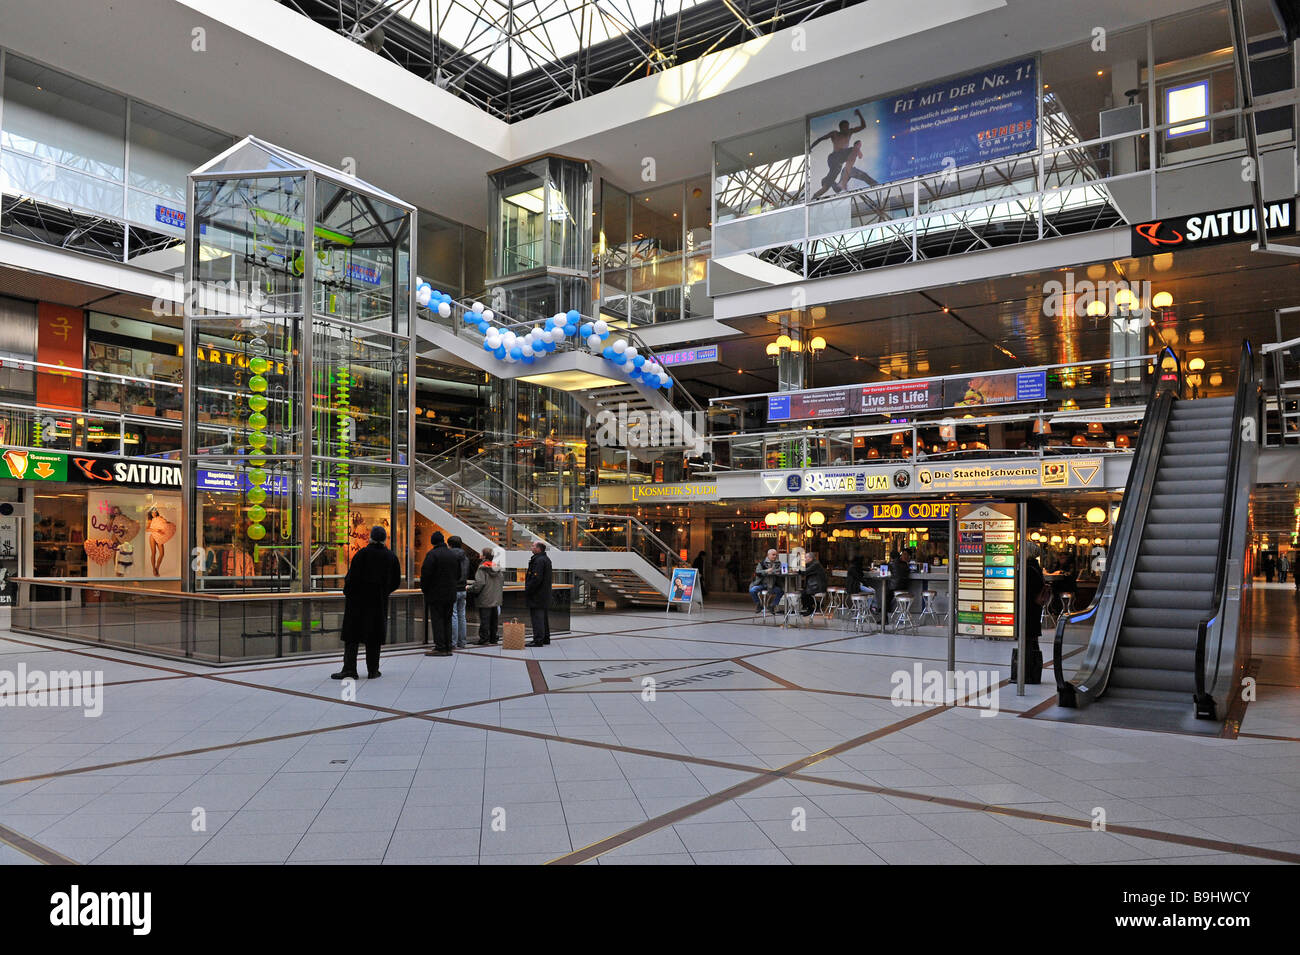 main hall with water clock in the europa center berlin germany stock photo 23135419 alamy. Black Bedroom Furniture Sets. Home Design Ideas